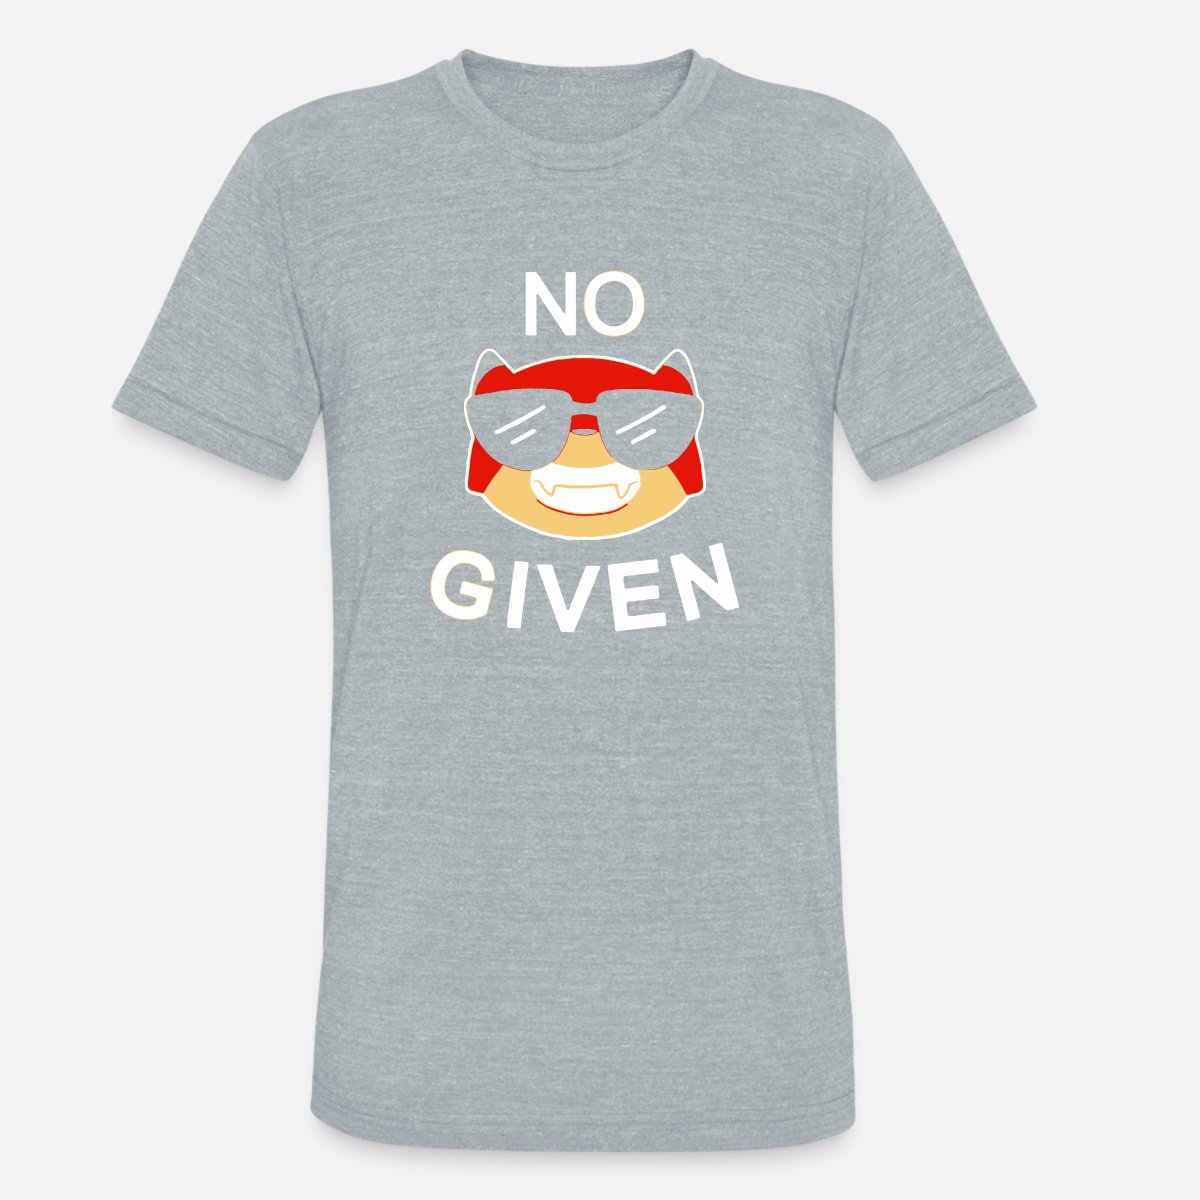 NO Given Unisex Tri-Blend T-Shirt - heather gray